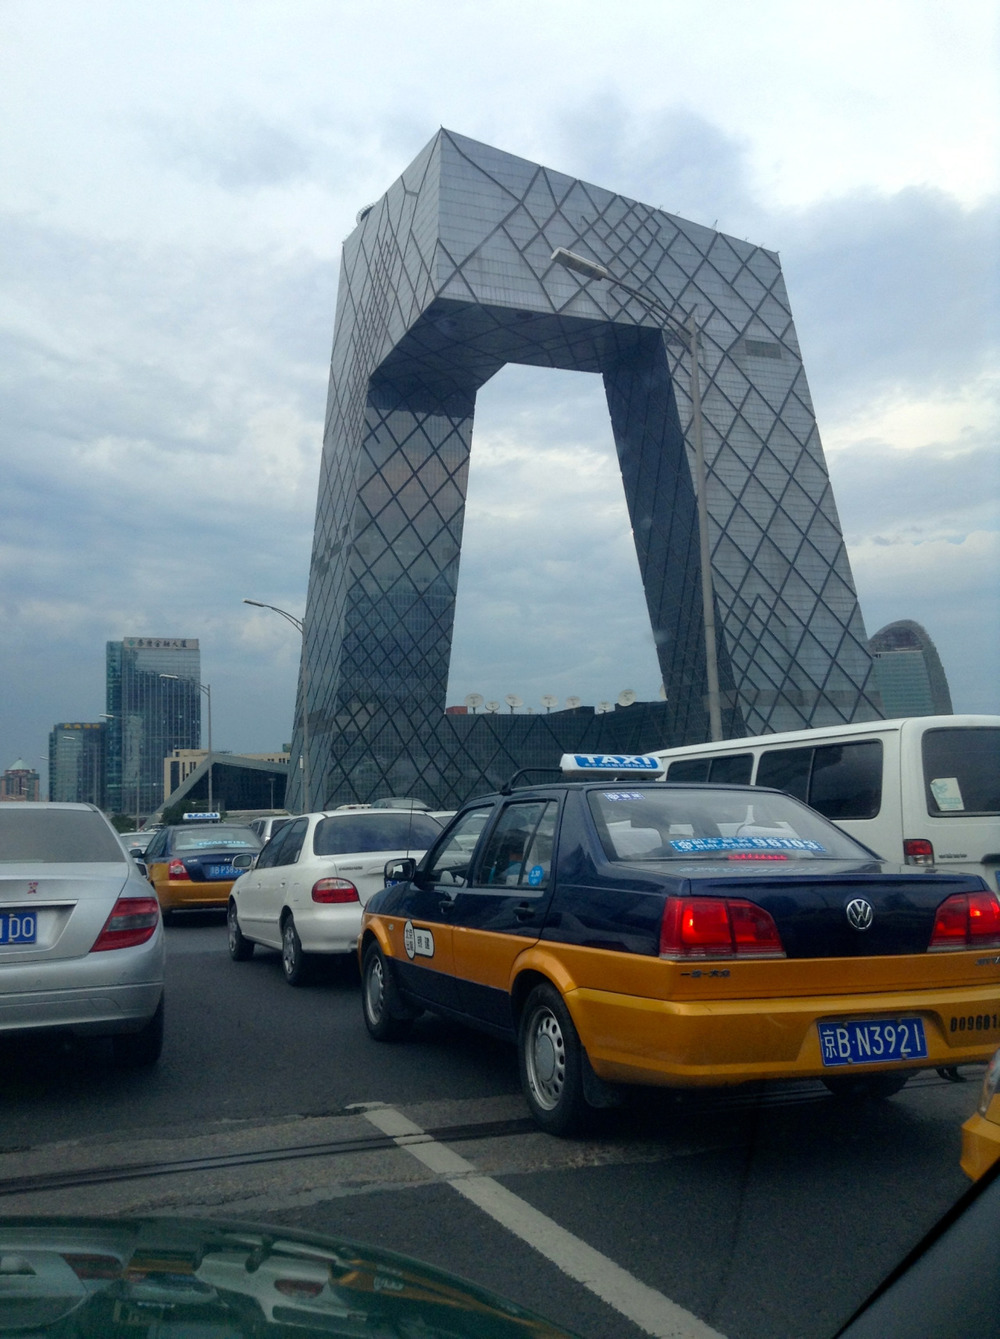 This is one of my favorite buildings in China. I've yet to go inside, but it's on my to do list.